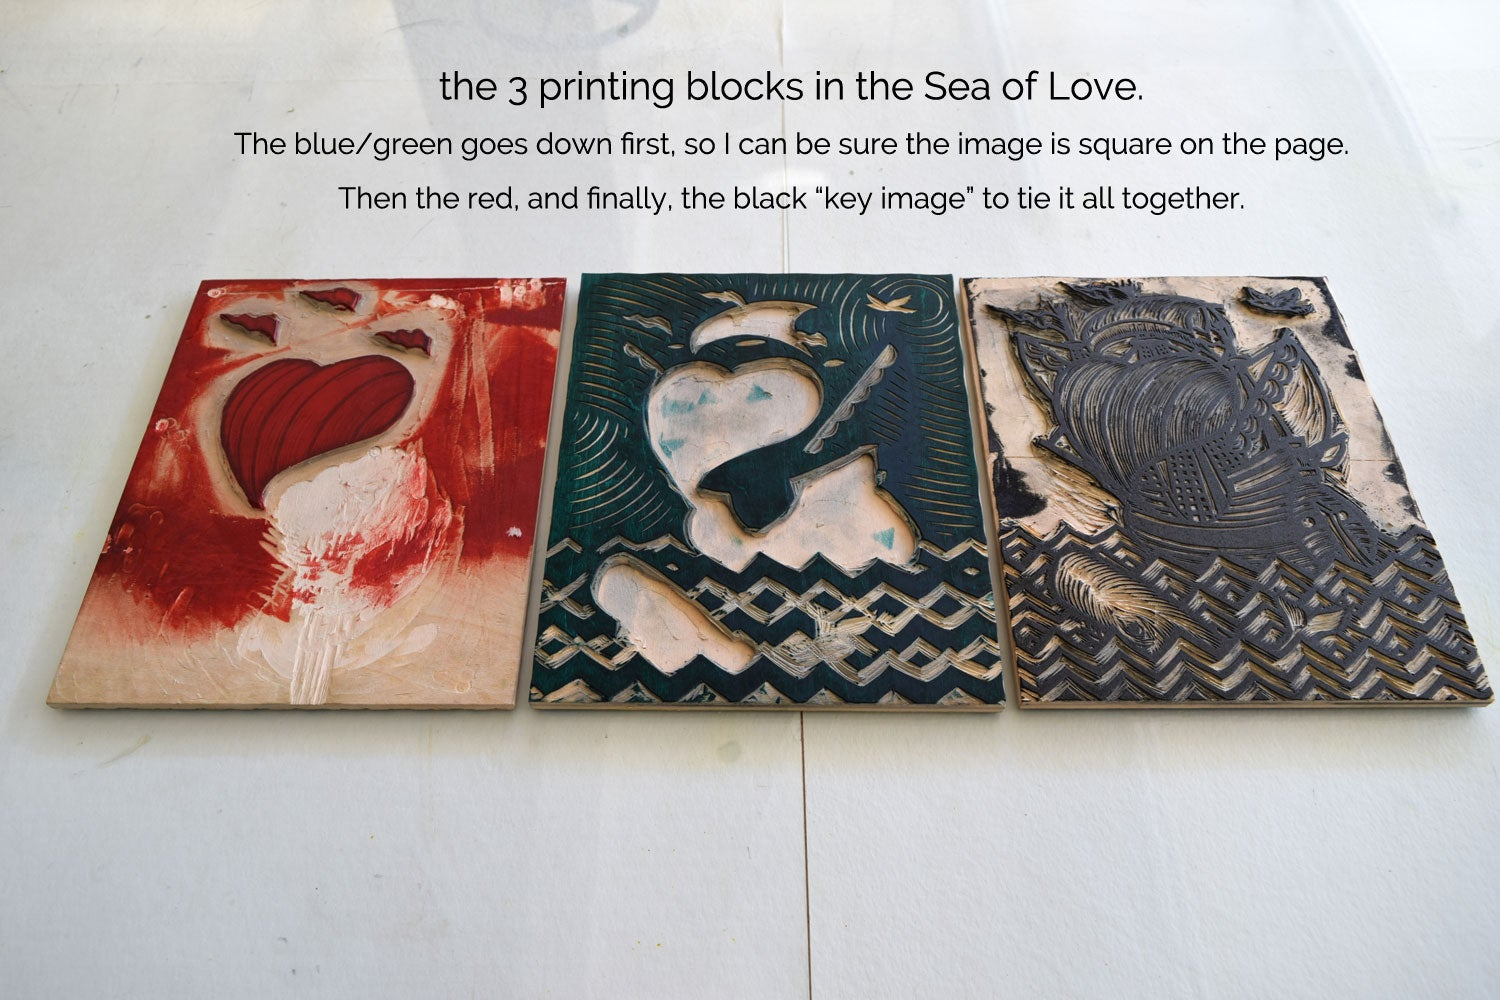 Image of Sea of Love